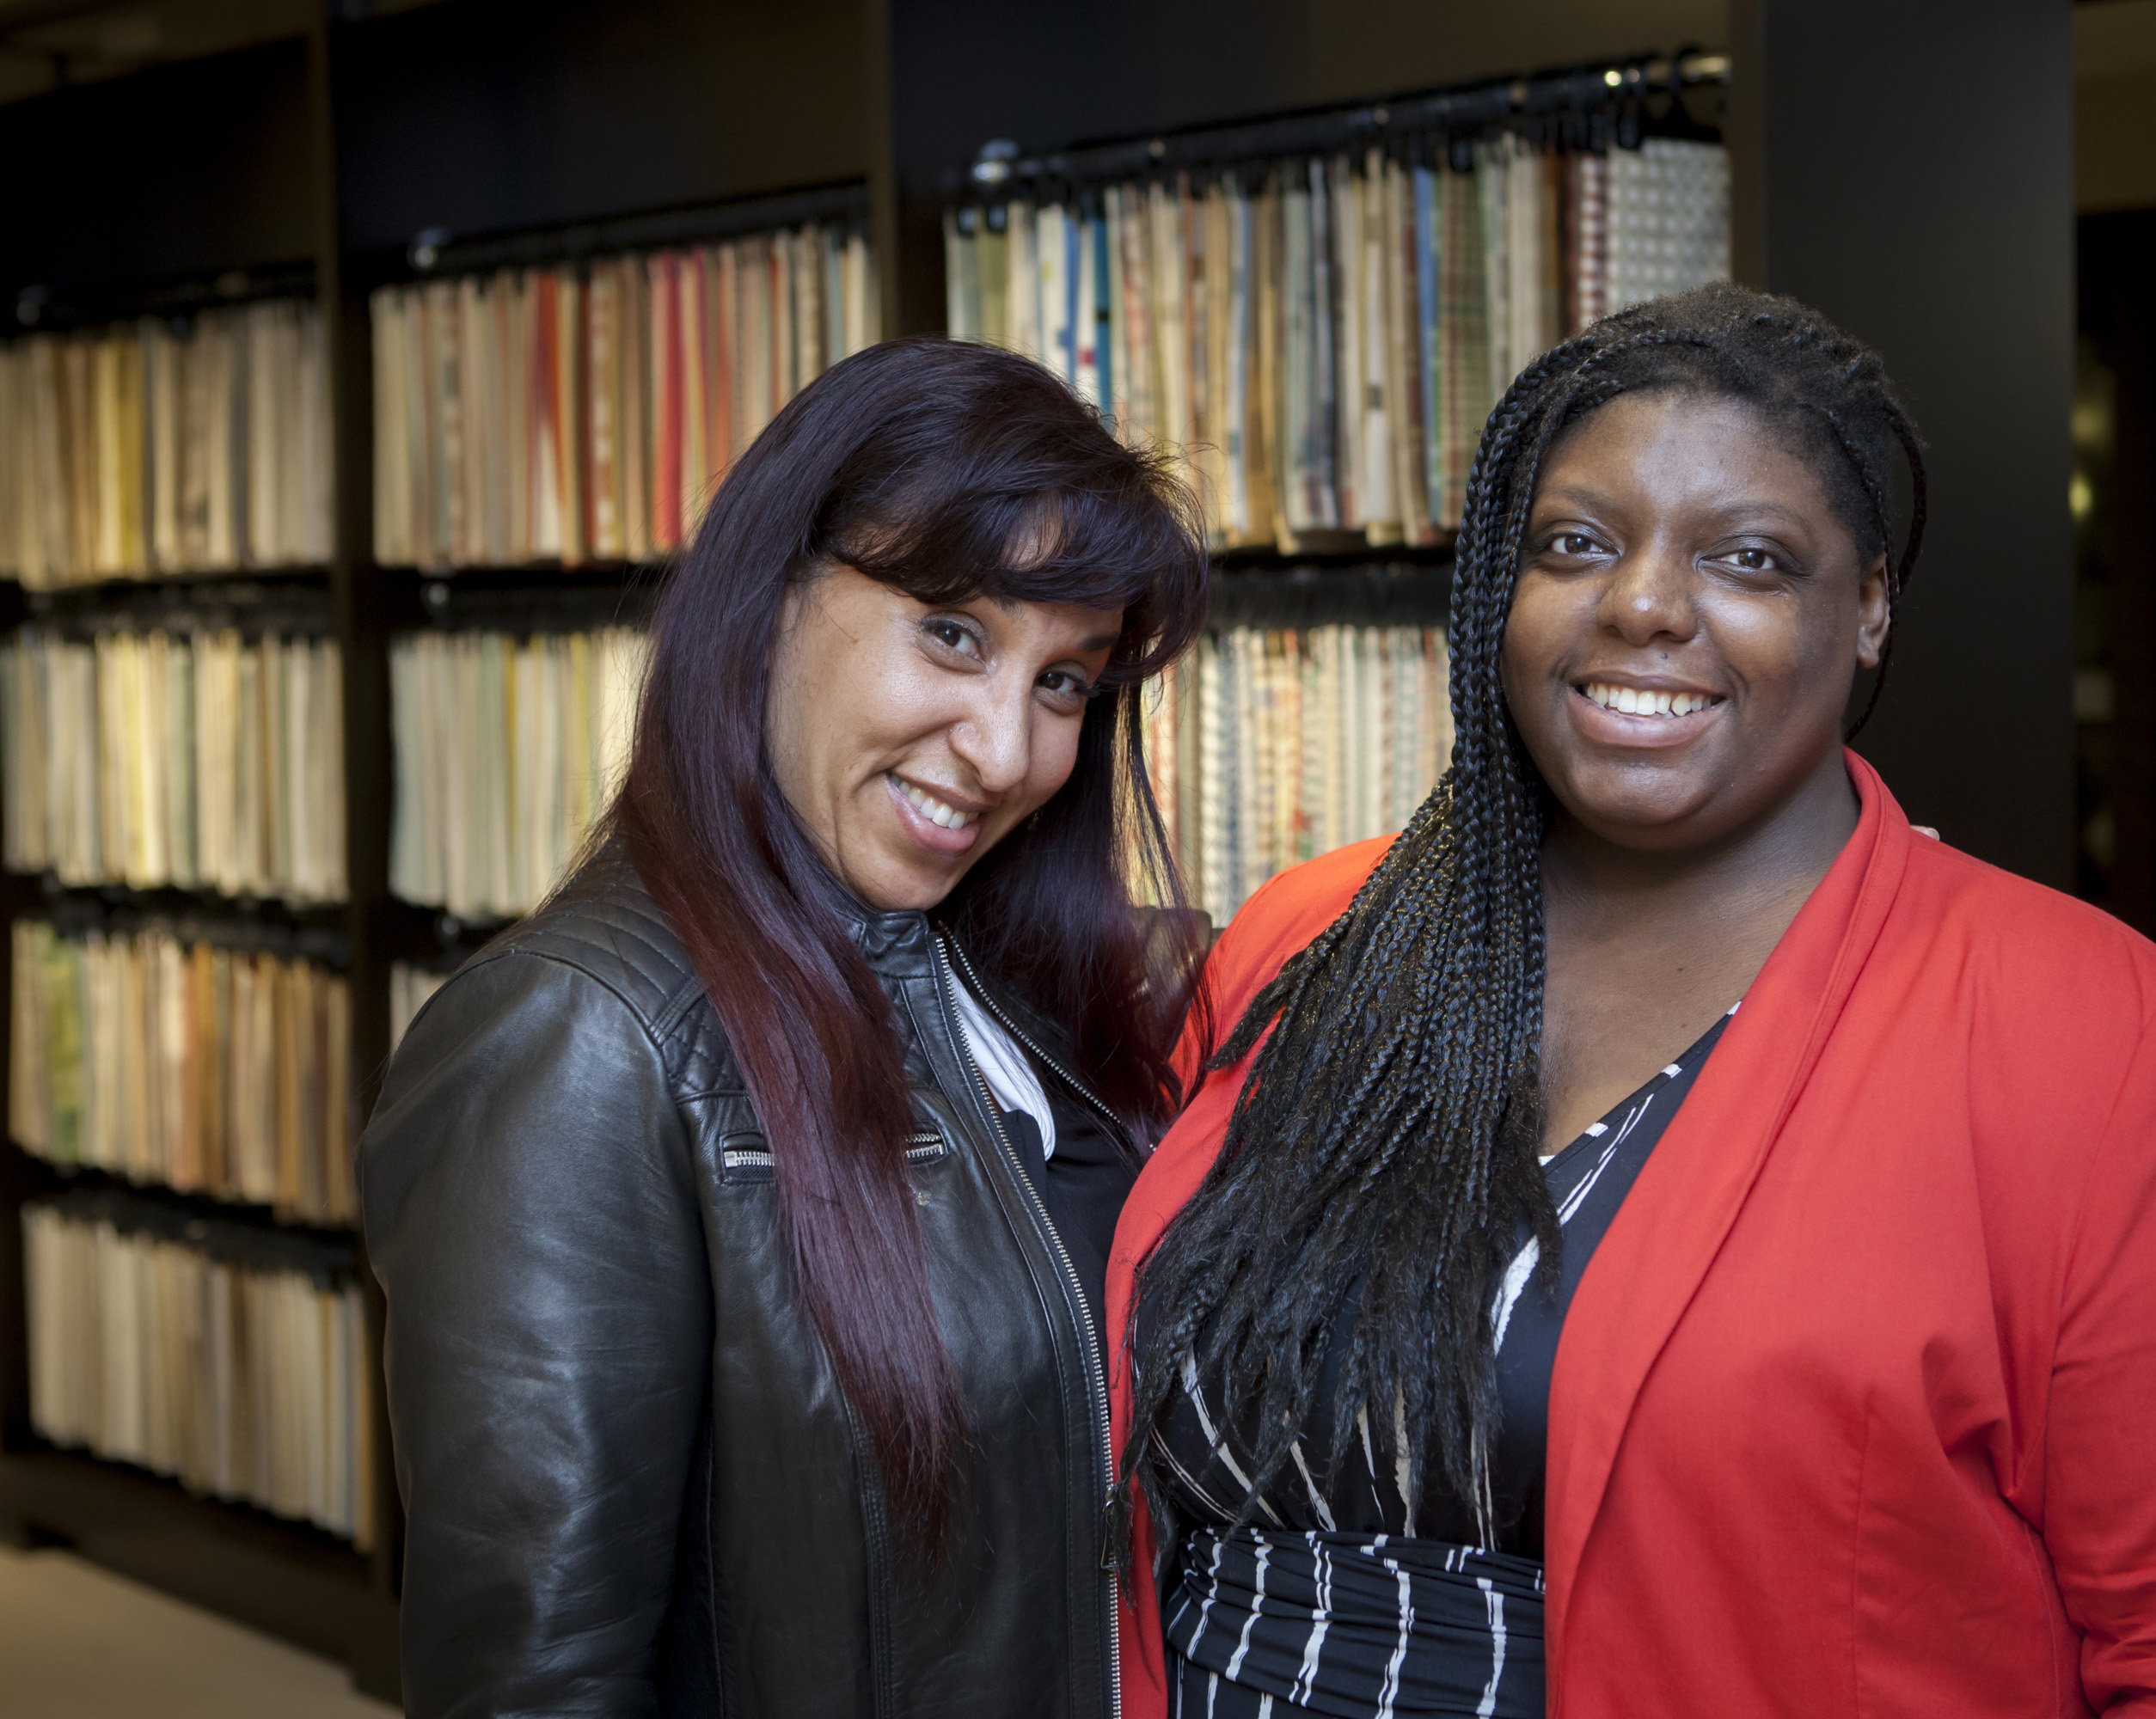 NYSID BFA student Maggie Vergara and architect Shakera Kyle